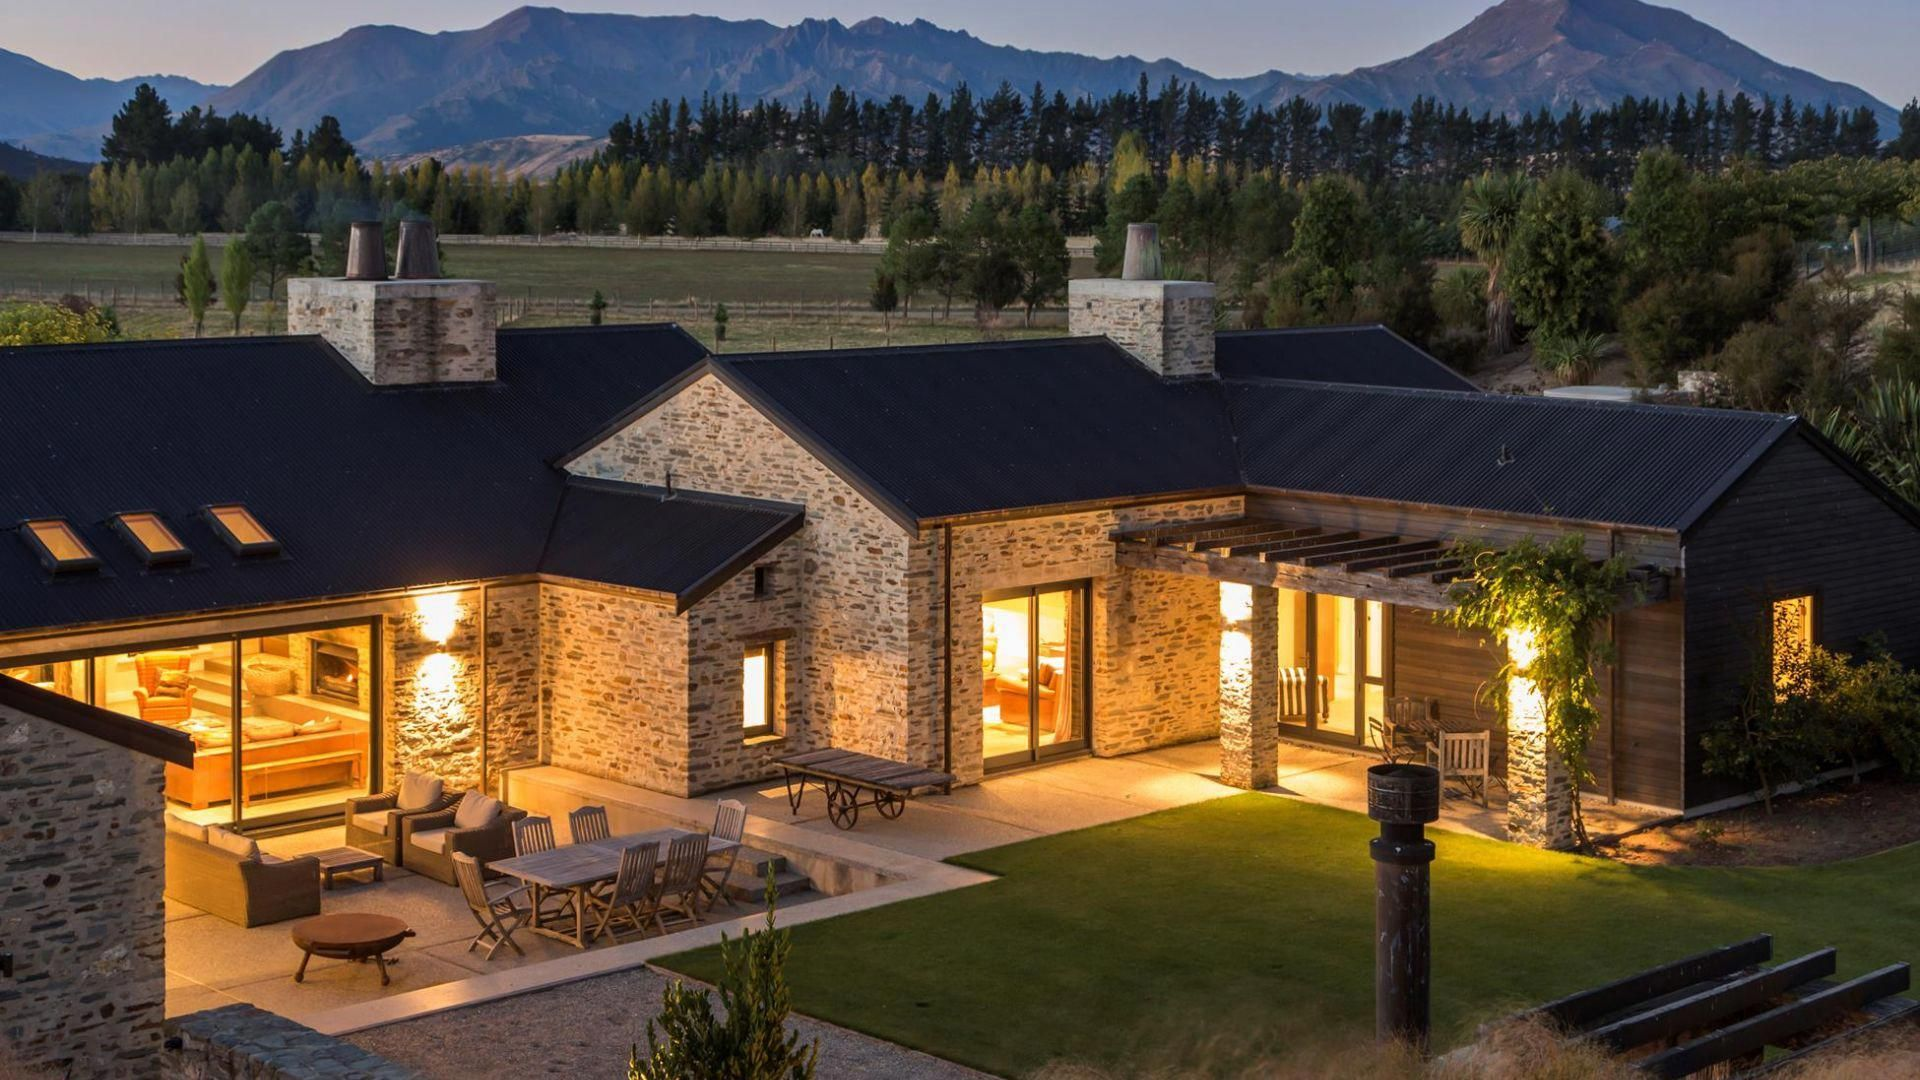 Mt barker wanaka luxury accommodation by touch of spice casasrusticas rural house also home decor design idea designs rh pinterest